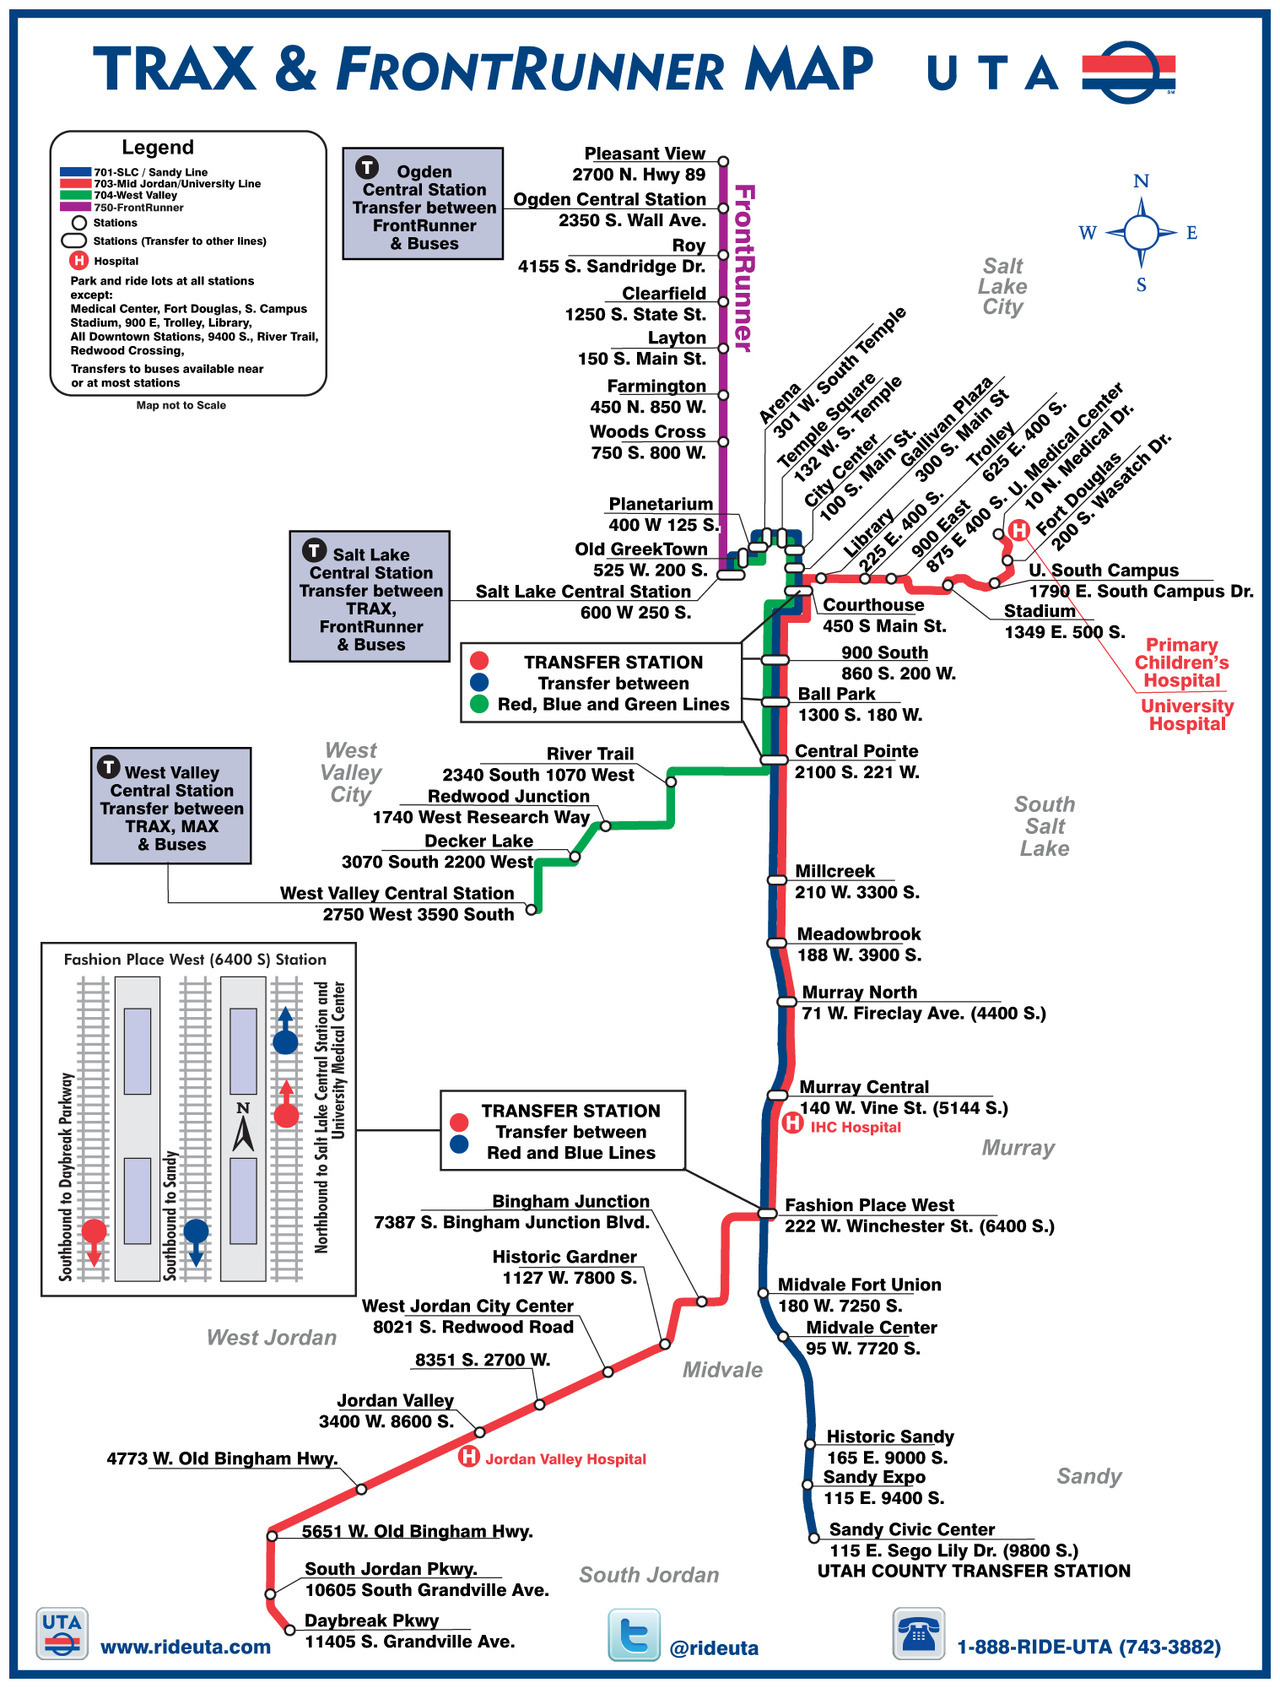 "Official Map: TRAX and FrontRunner Rail Map, Salt Lake City, Utah By all accounts, the Utah Transit Authority's rail system is a modern and successful one. However, this is something you'd never guess from their system map, which is one of the most cobbled-together, unprofessionally done maps I've ever seen. Have we been there? Yes, but I've never caught the train there. What we like: The required information is there to be found if you can bear to look at the map long enough. What we don't like: Put simply, this is terrible, terrible work. The downtown area is ridiculously cramped (the Planetarium and Arena station dots actually overlap slightly!), leading to some ugly and difficult to follow labelling of stations, especially between the Gallivan Plaza and 900 East stations. Things could be improved somewhat by setting the station addresses in a smaller, lighter font to at least alleviate some confusion. The lines that point from the labels to the stations have no consistency at all: some are longer than the station name, others are shorter, leading to a very messy look. The map also seems to think that its users are utterly incapable of understanding what a ""transfer station"" is, as it includes giant, redundant call out boxes that point at five separate stations explaining the concept. The call out boxes for the stations that allow transfers to different modes are large and intrusive and could be much better handled with icons that represent each mode. The inset map of the track layout at Fashion Place West station is somewhat useful (although I think signage at the station itself would suffice, as it's not a particularly complex arrangement), but looks like a generic piece of clip art. The presence of ESRI fonts in the PDF of this map leads me to believe that this map is based off GIS data, which has only been slightly tweaked to create the final map. Both for aesthetics and information hierarchy, I think the map could have greatly benefited from being redrawn from scratch to allow better spacing of elements. Other parts of the map, especially the call out boxes, need to be rethought completely. Our rating: Awful. 1 star (and that's probably being generous).  (Source: Official UTA website)"